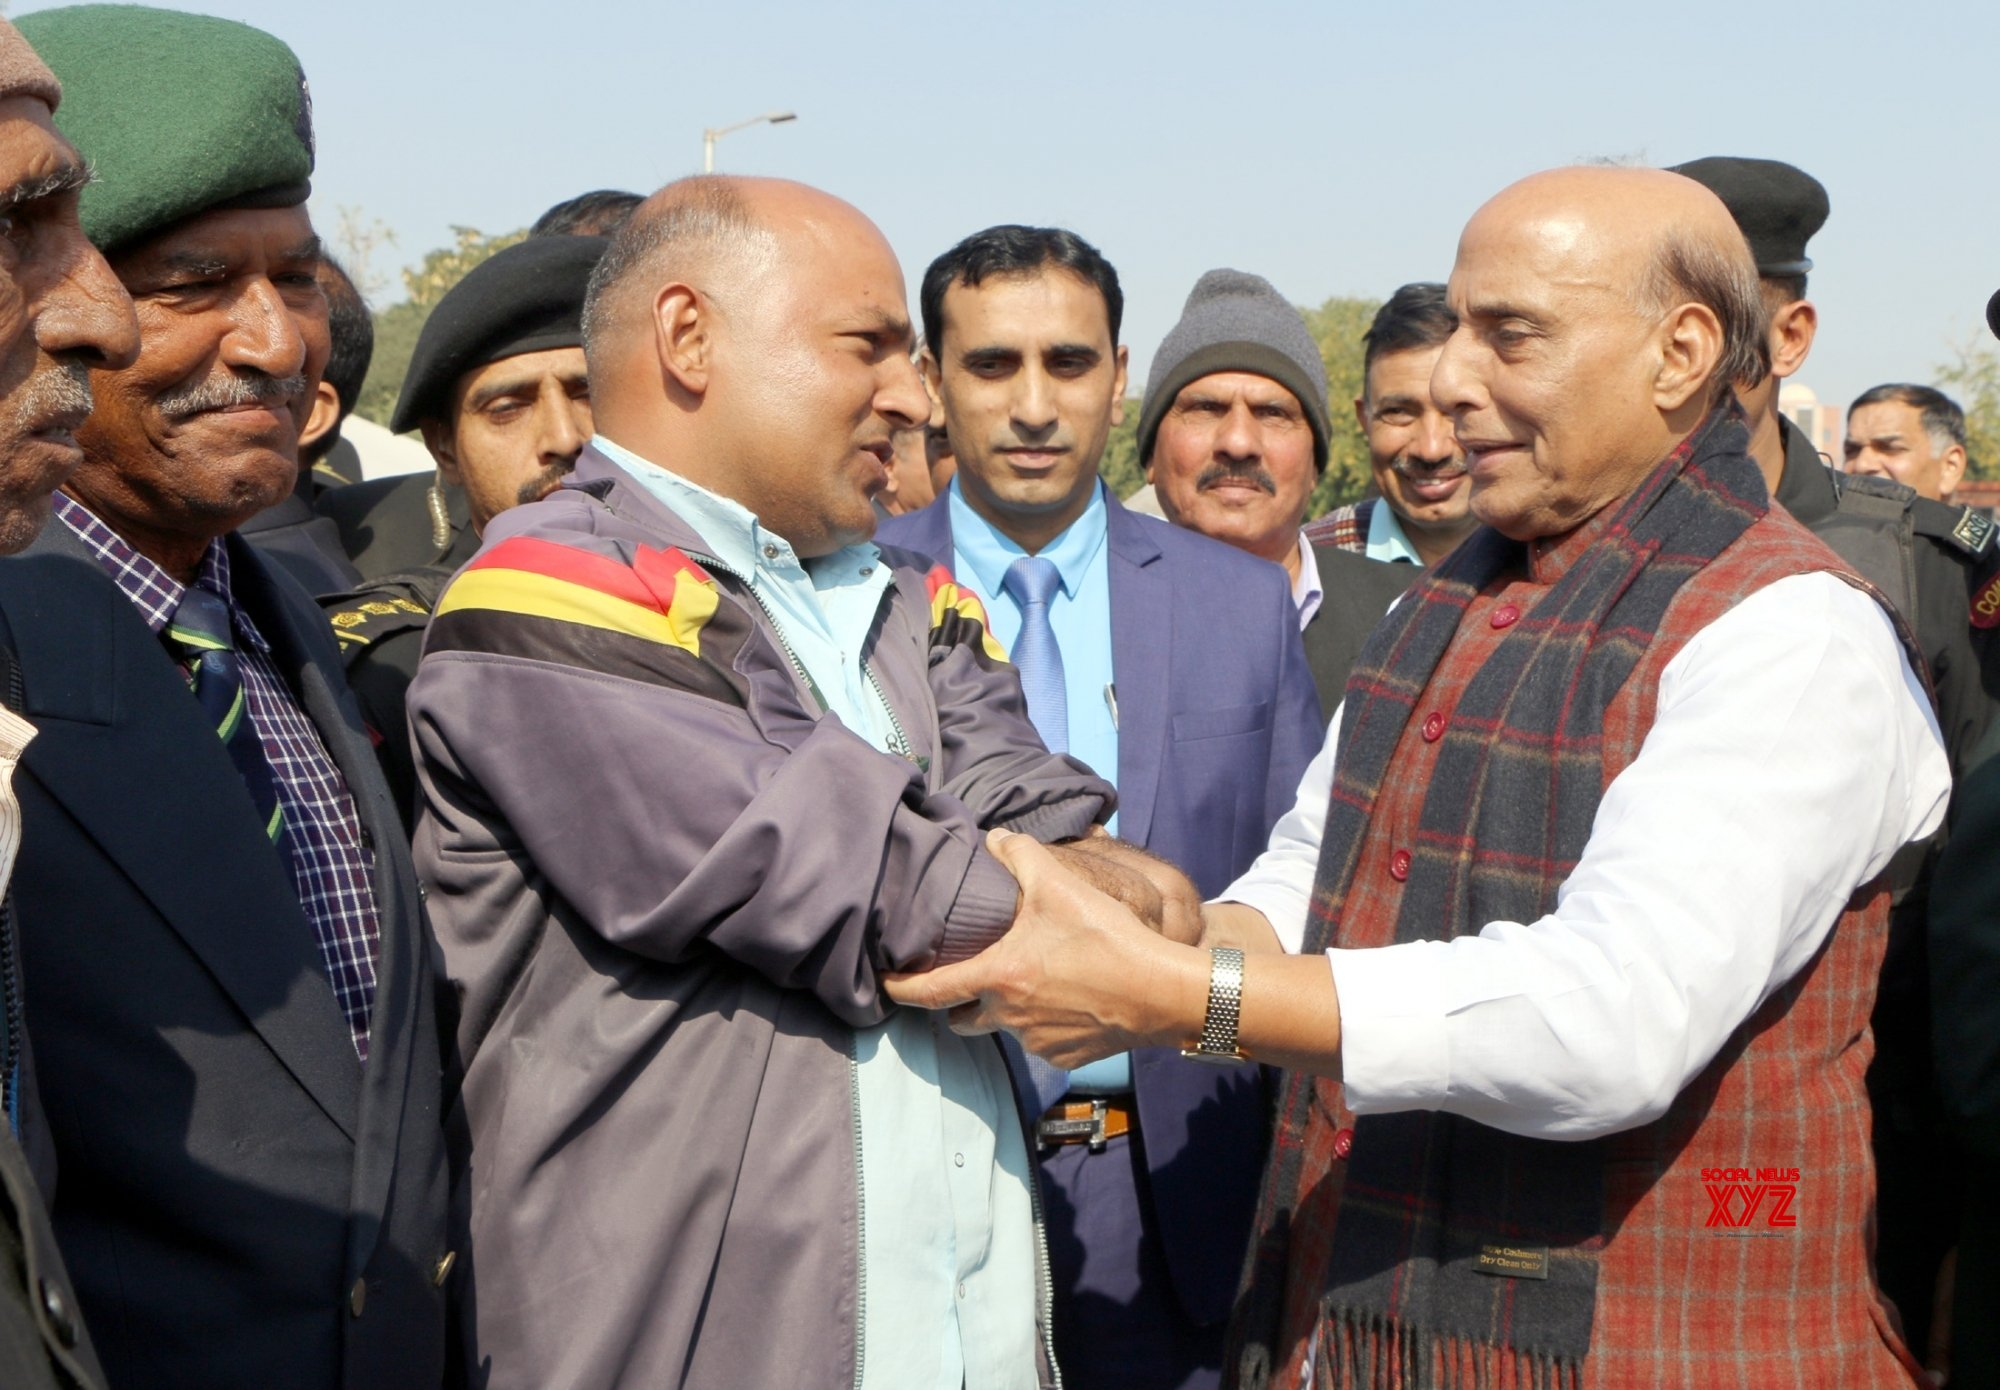 Jaipur: Rajnath Singh at Armed Forces Veterans' Day #Gallery